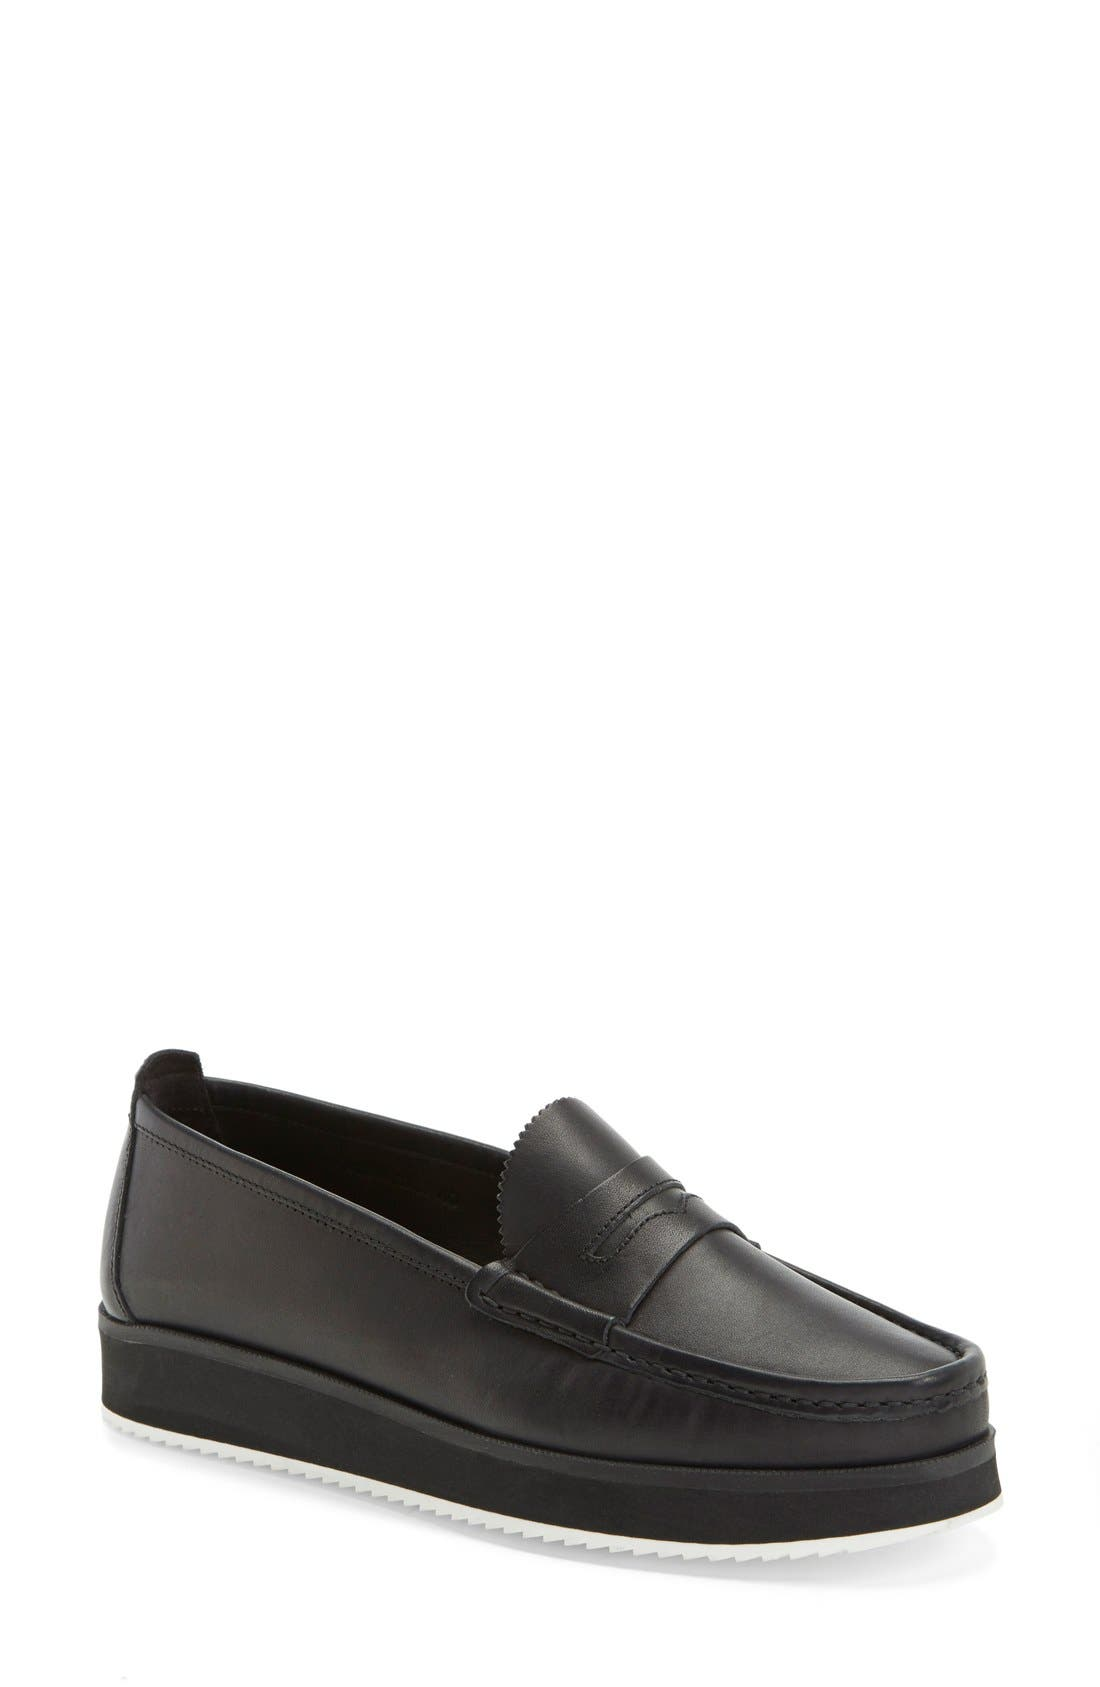 'Tanya' Penny Loafer,                             Main thumbnail 1, color,                             Black Leather